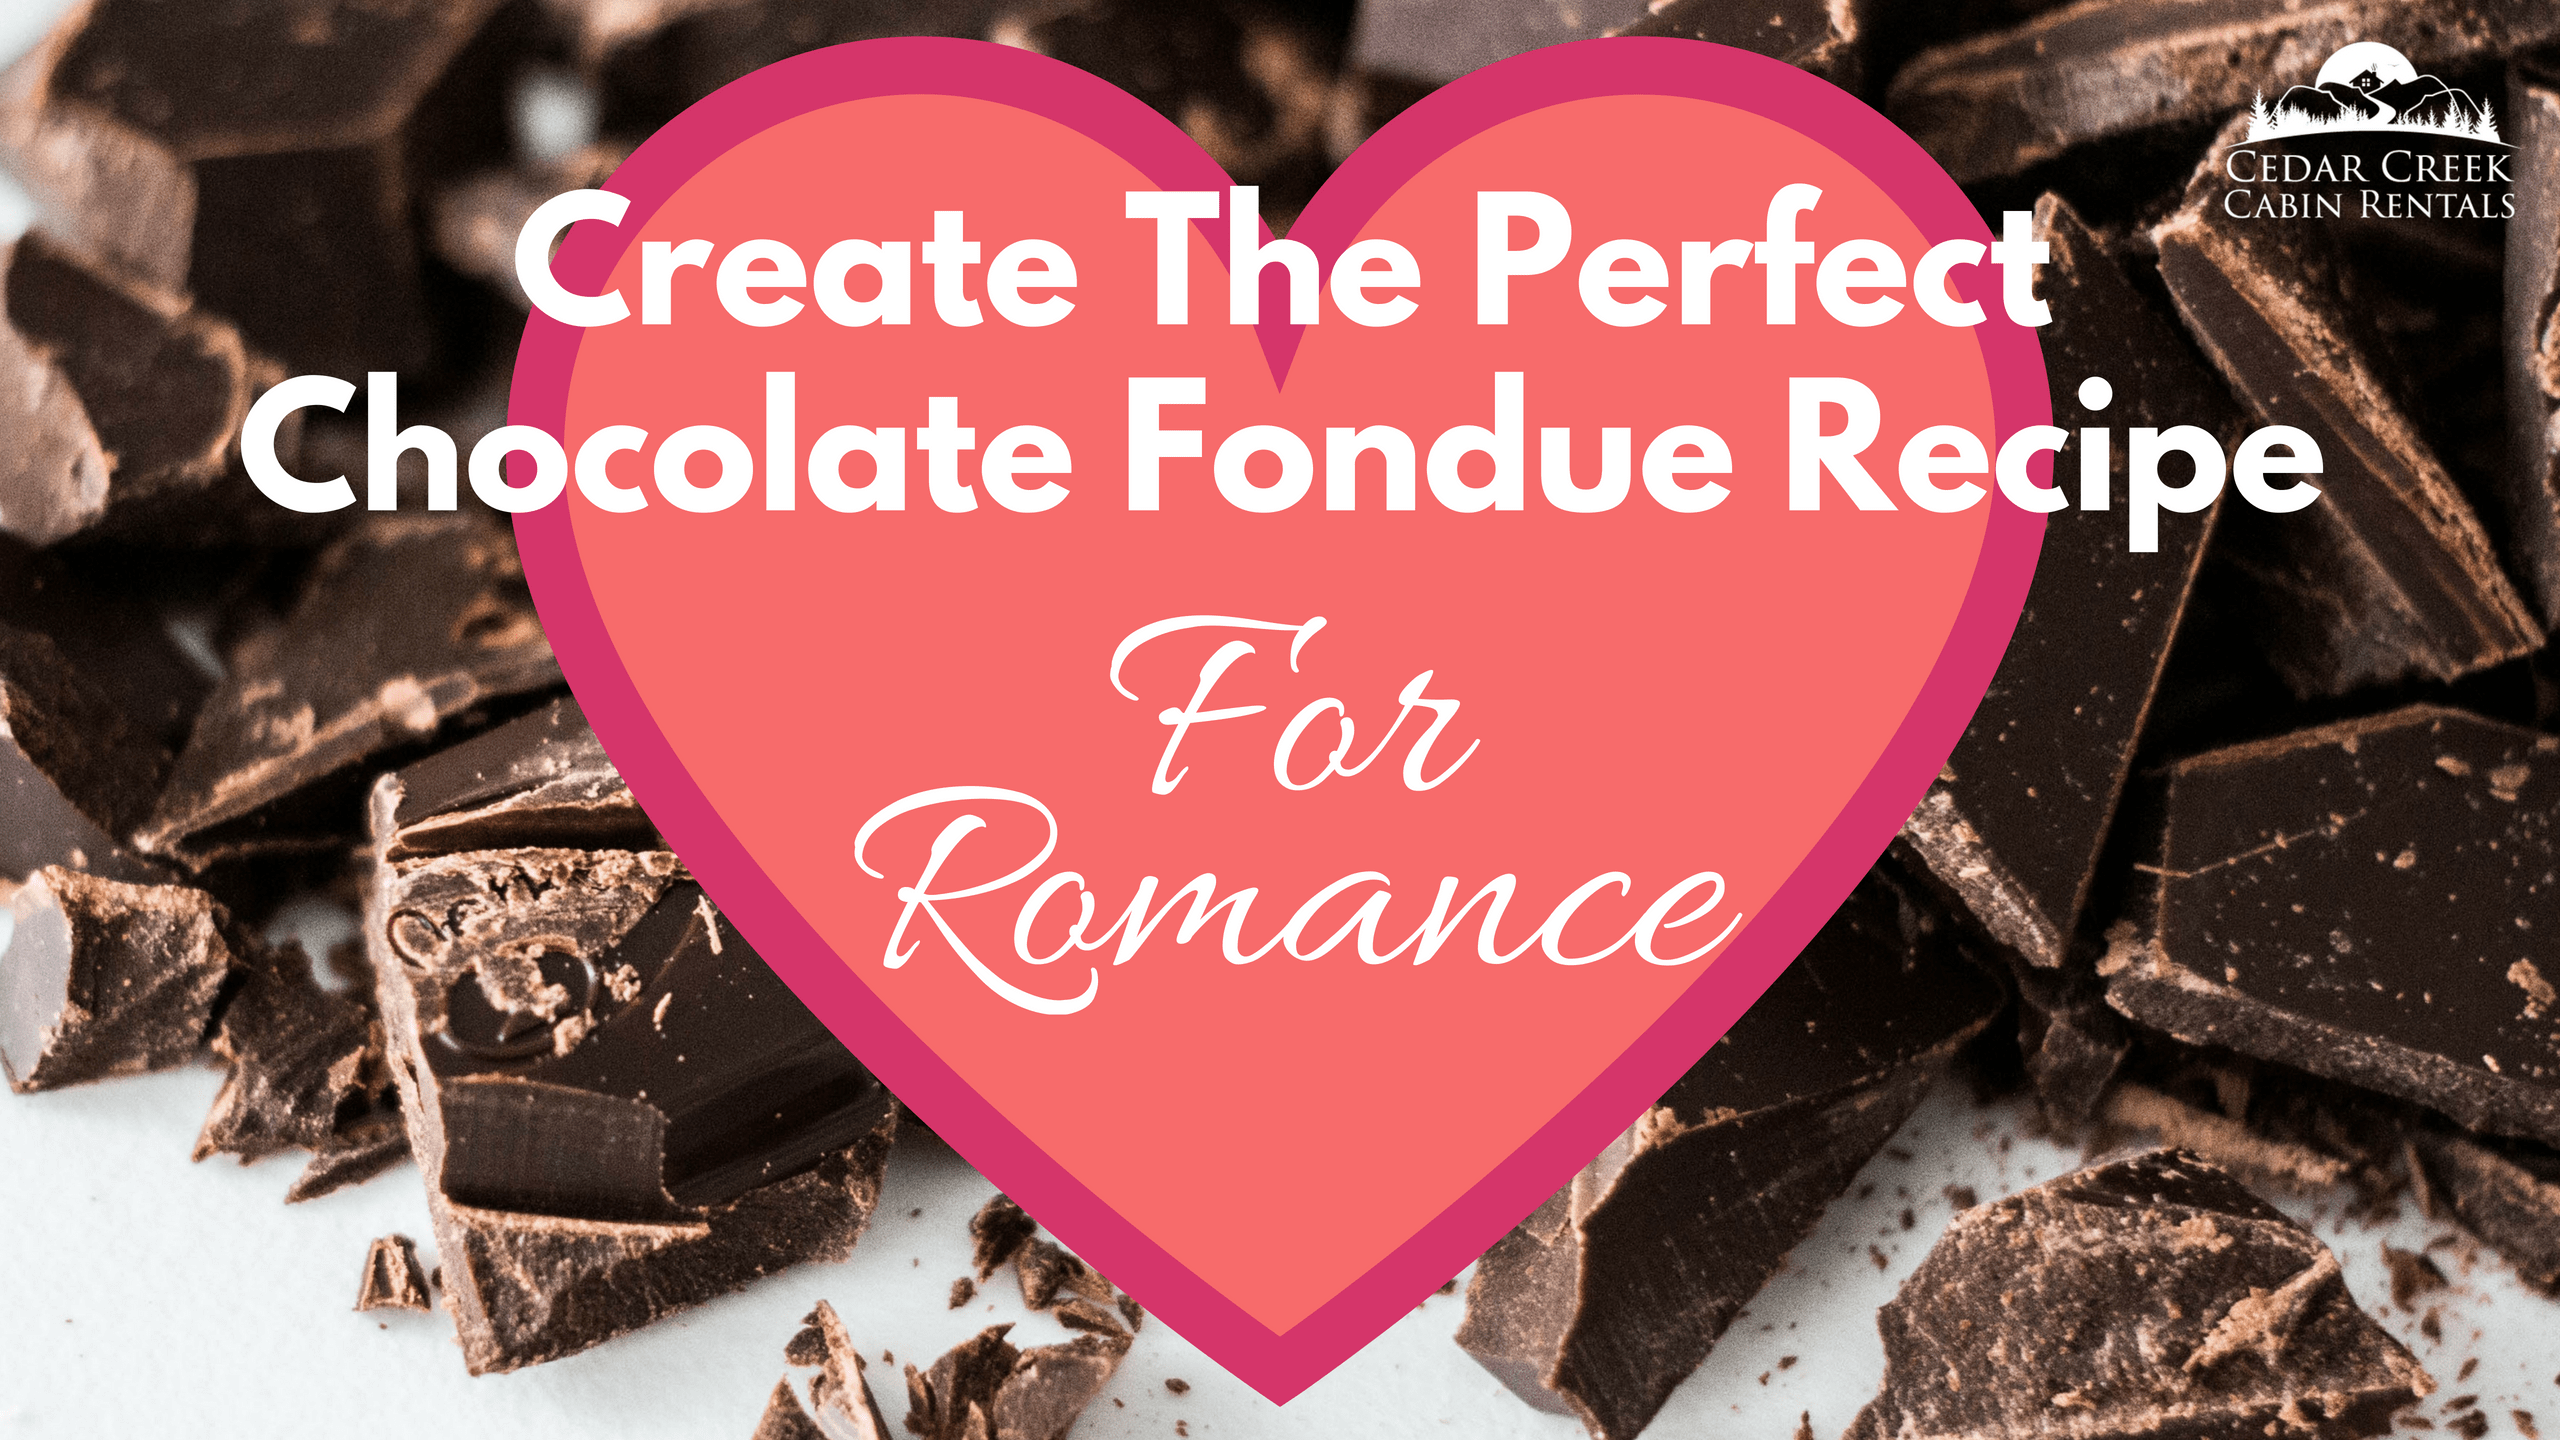 Create-The-Perfect-Chocolate-Fondue-Recipe-For-Romance-Blog-Banner